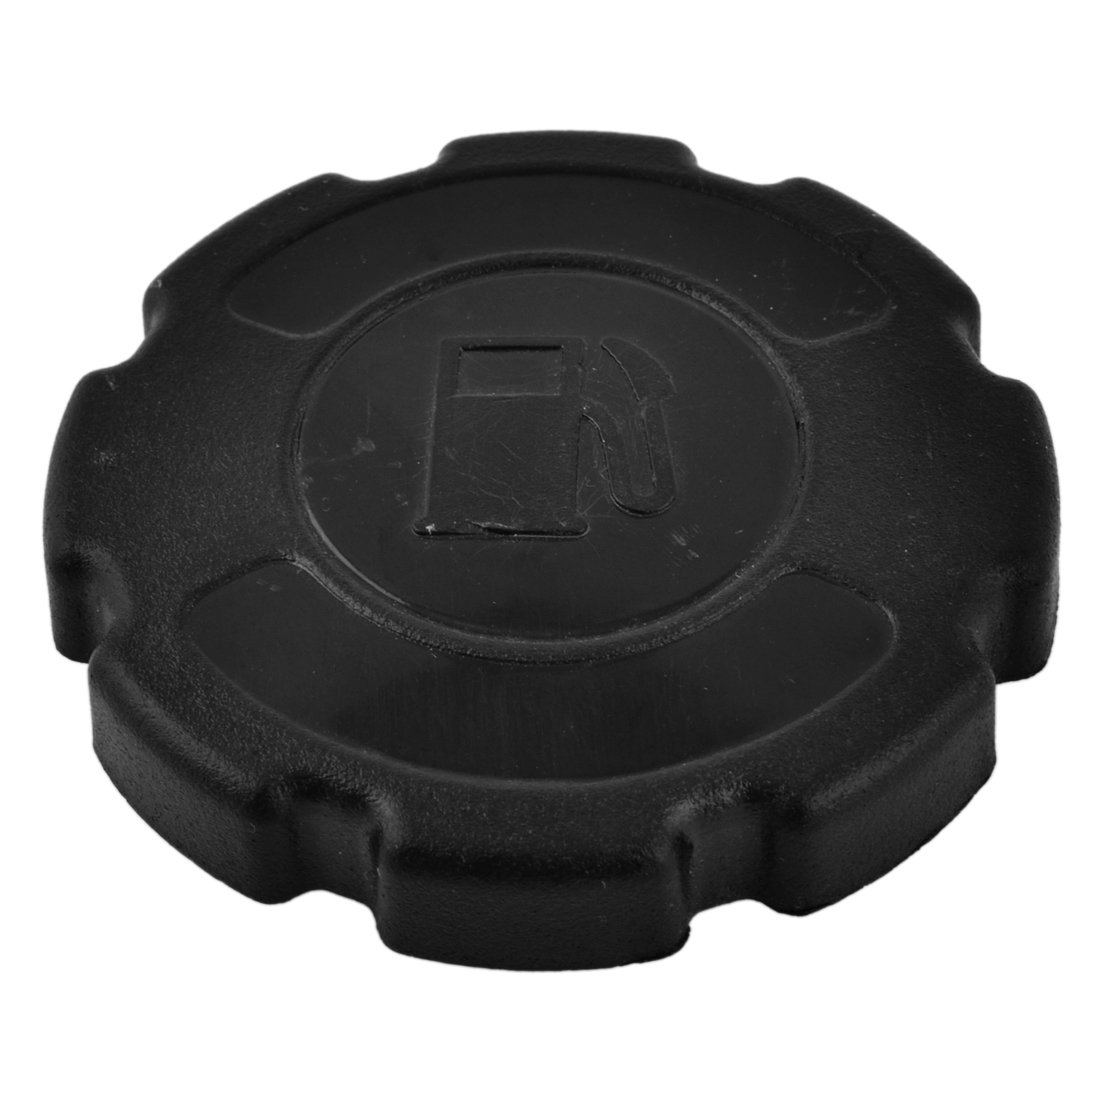 uxcell Replacement Gasoline Engine Motor Oil Gas Fuel Tank Gasket Cap Cover